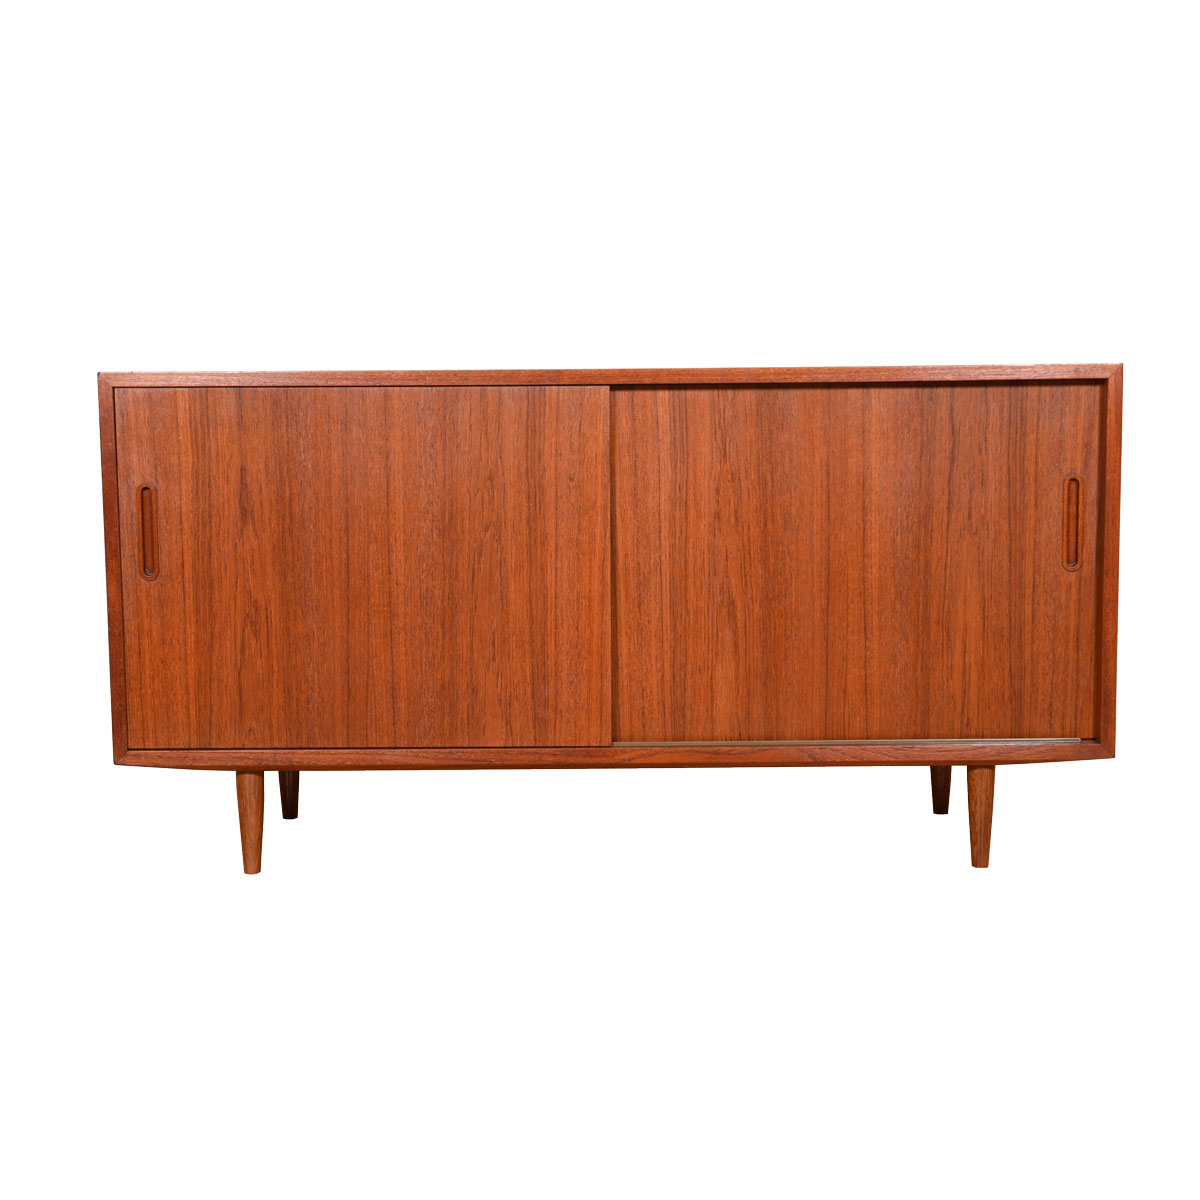 Compact Danish Teak Sideboard / Media Cabinet with Sliding Doors